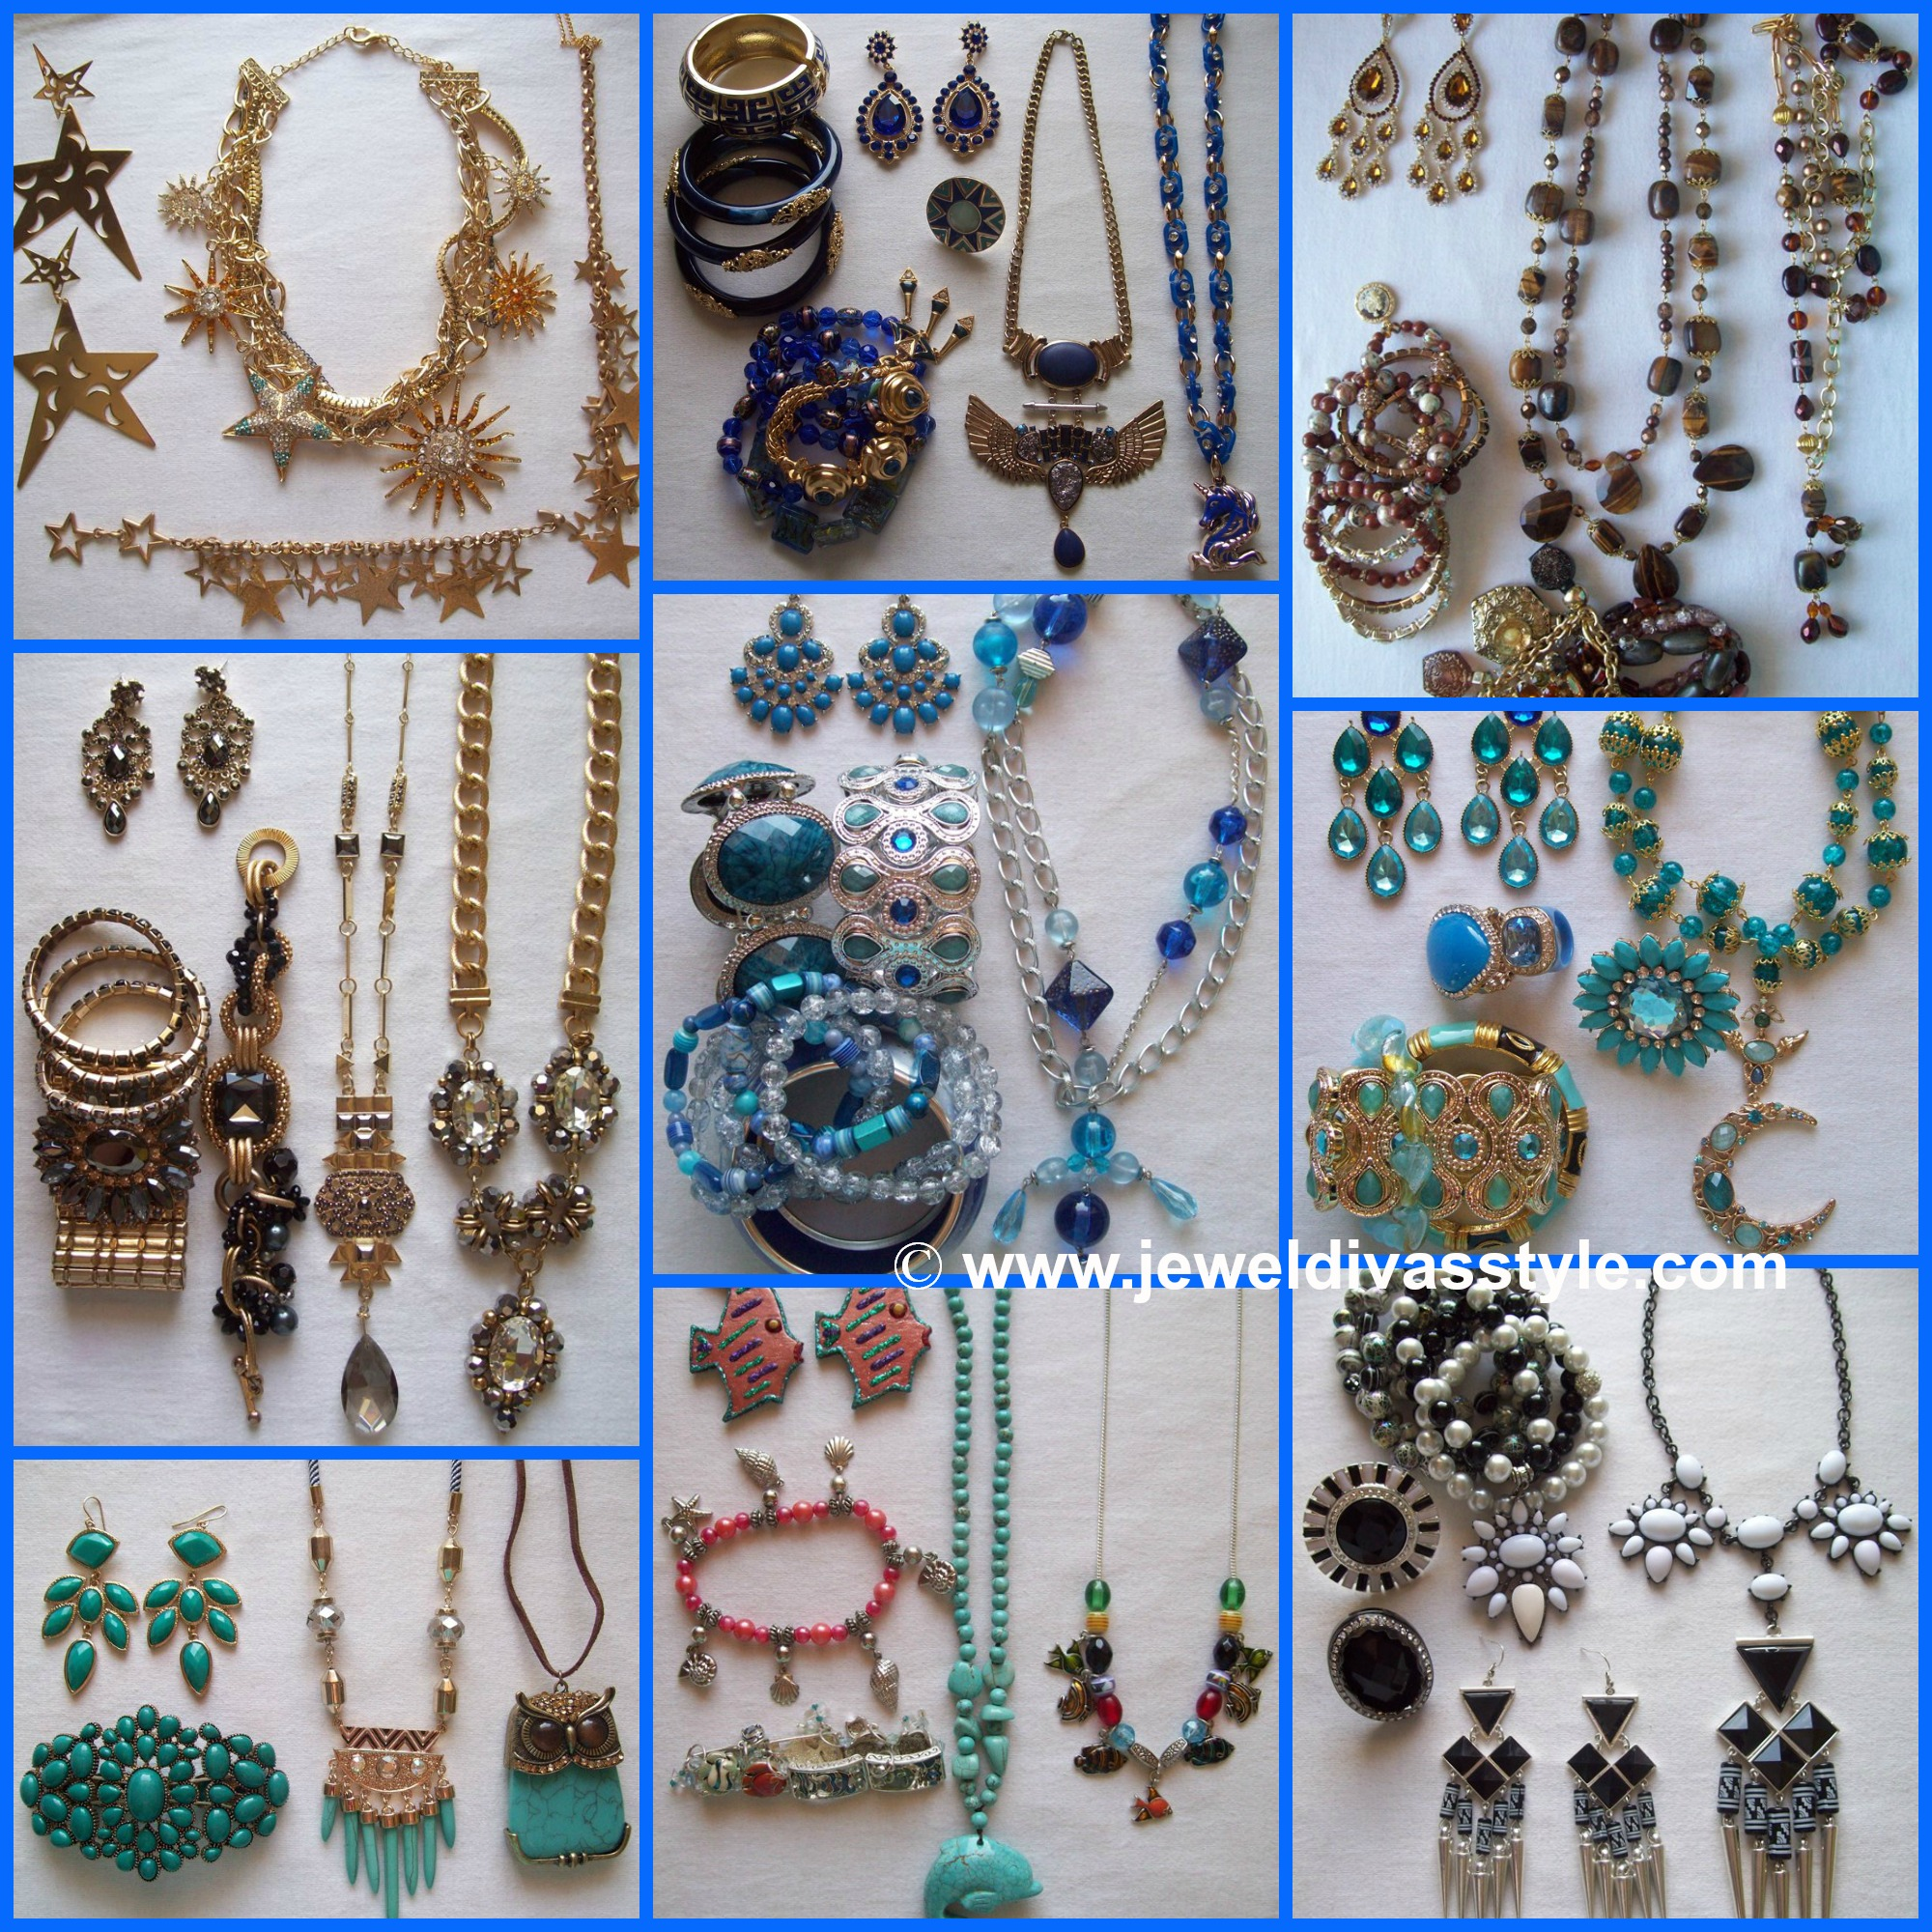 JEWEL DIVAS STYLE PERSONAL JEWELLERY COLLECTION